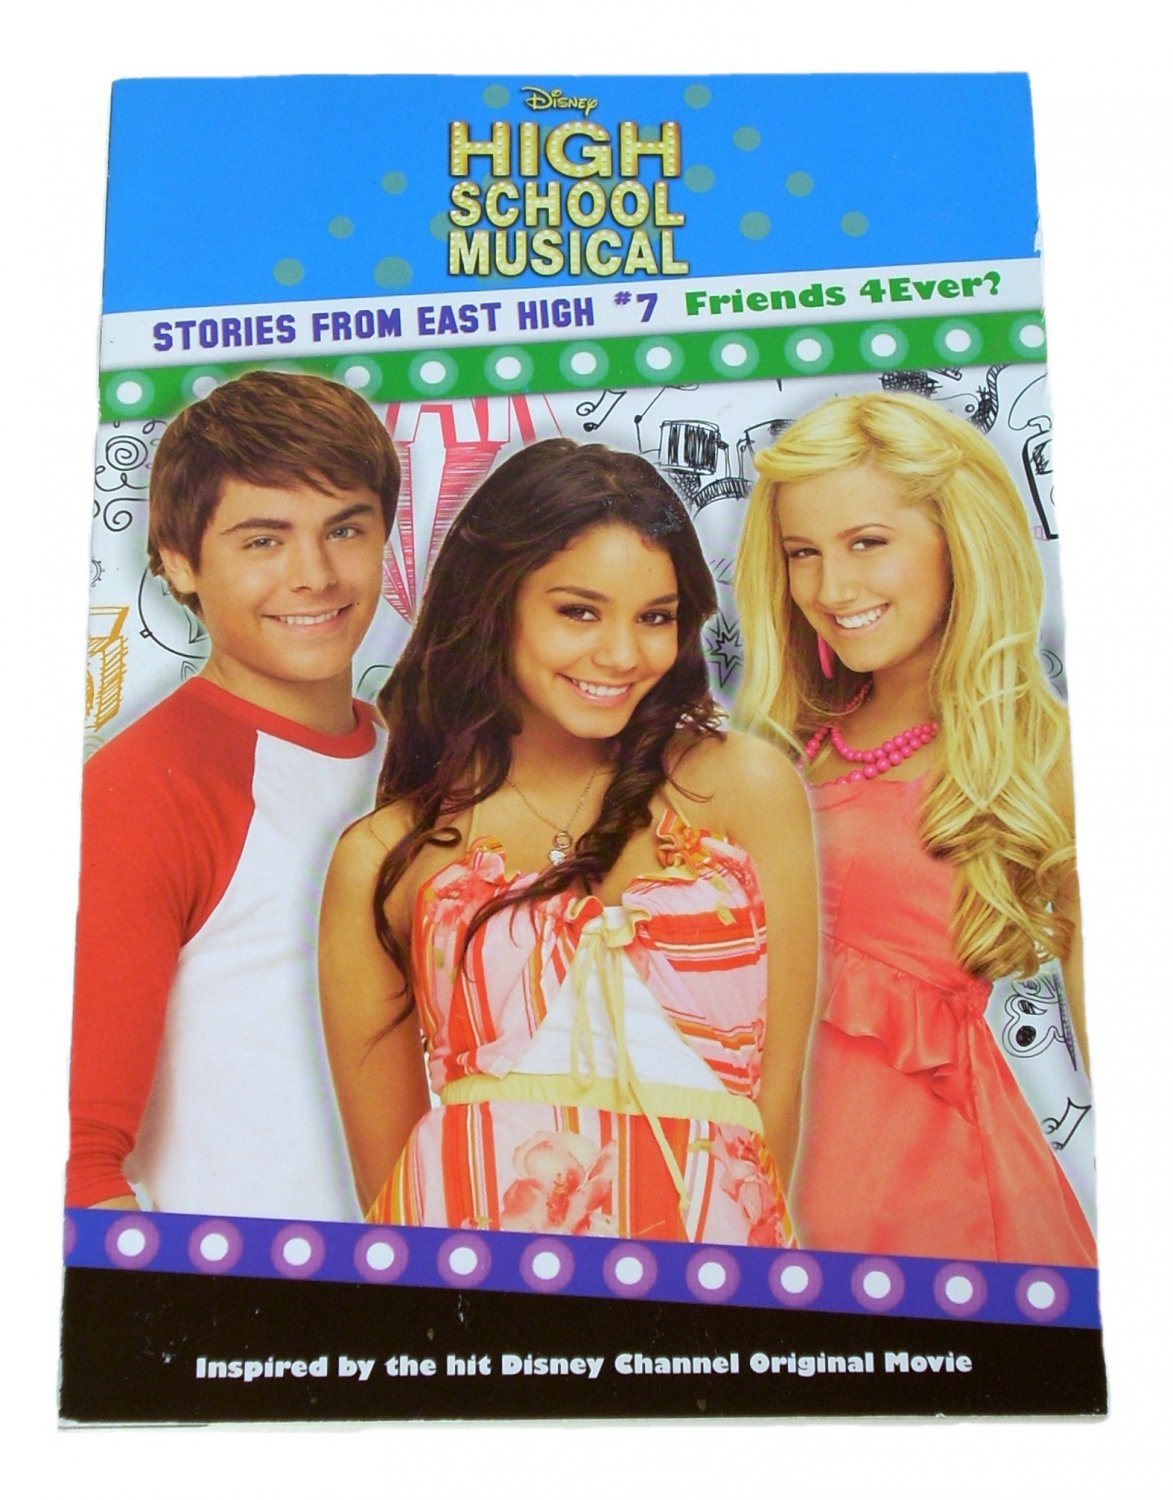 Friends 4Ever? #7 High School Musical Stories From East High By Cathy Hapka 2008 Paperback